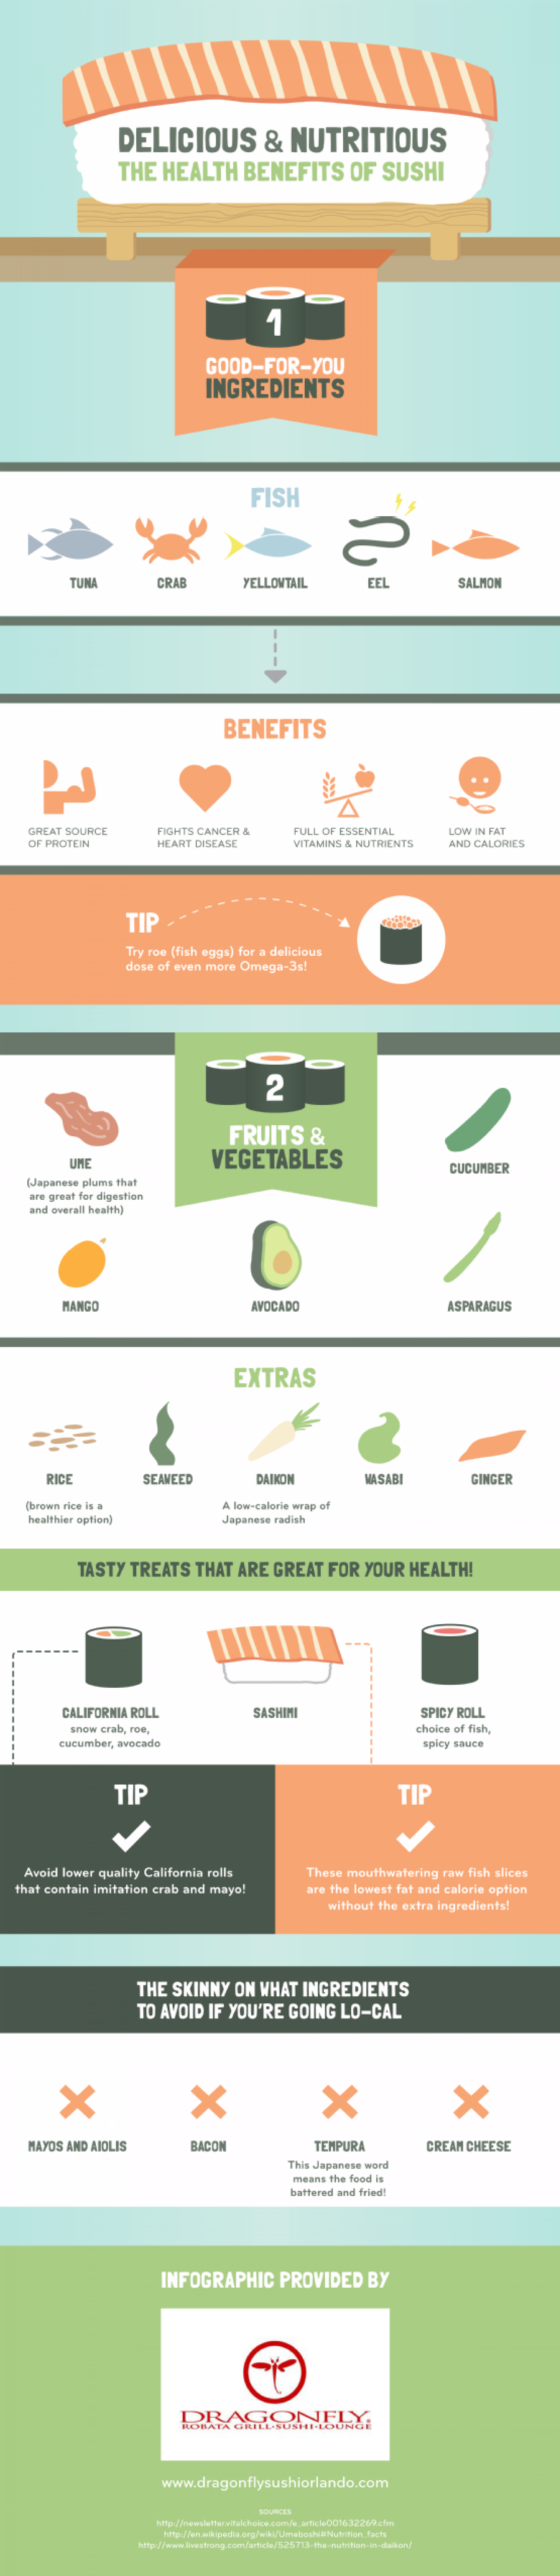 Delicious and Nutritious: The Health Benefits of Sushi  Infographic